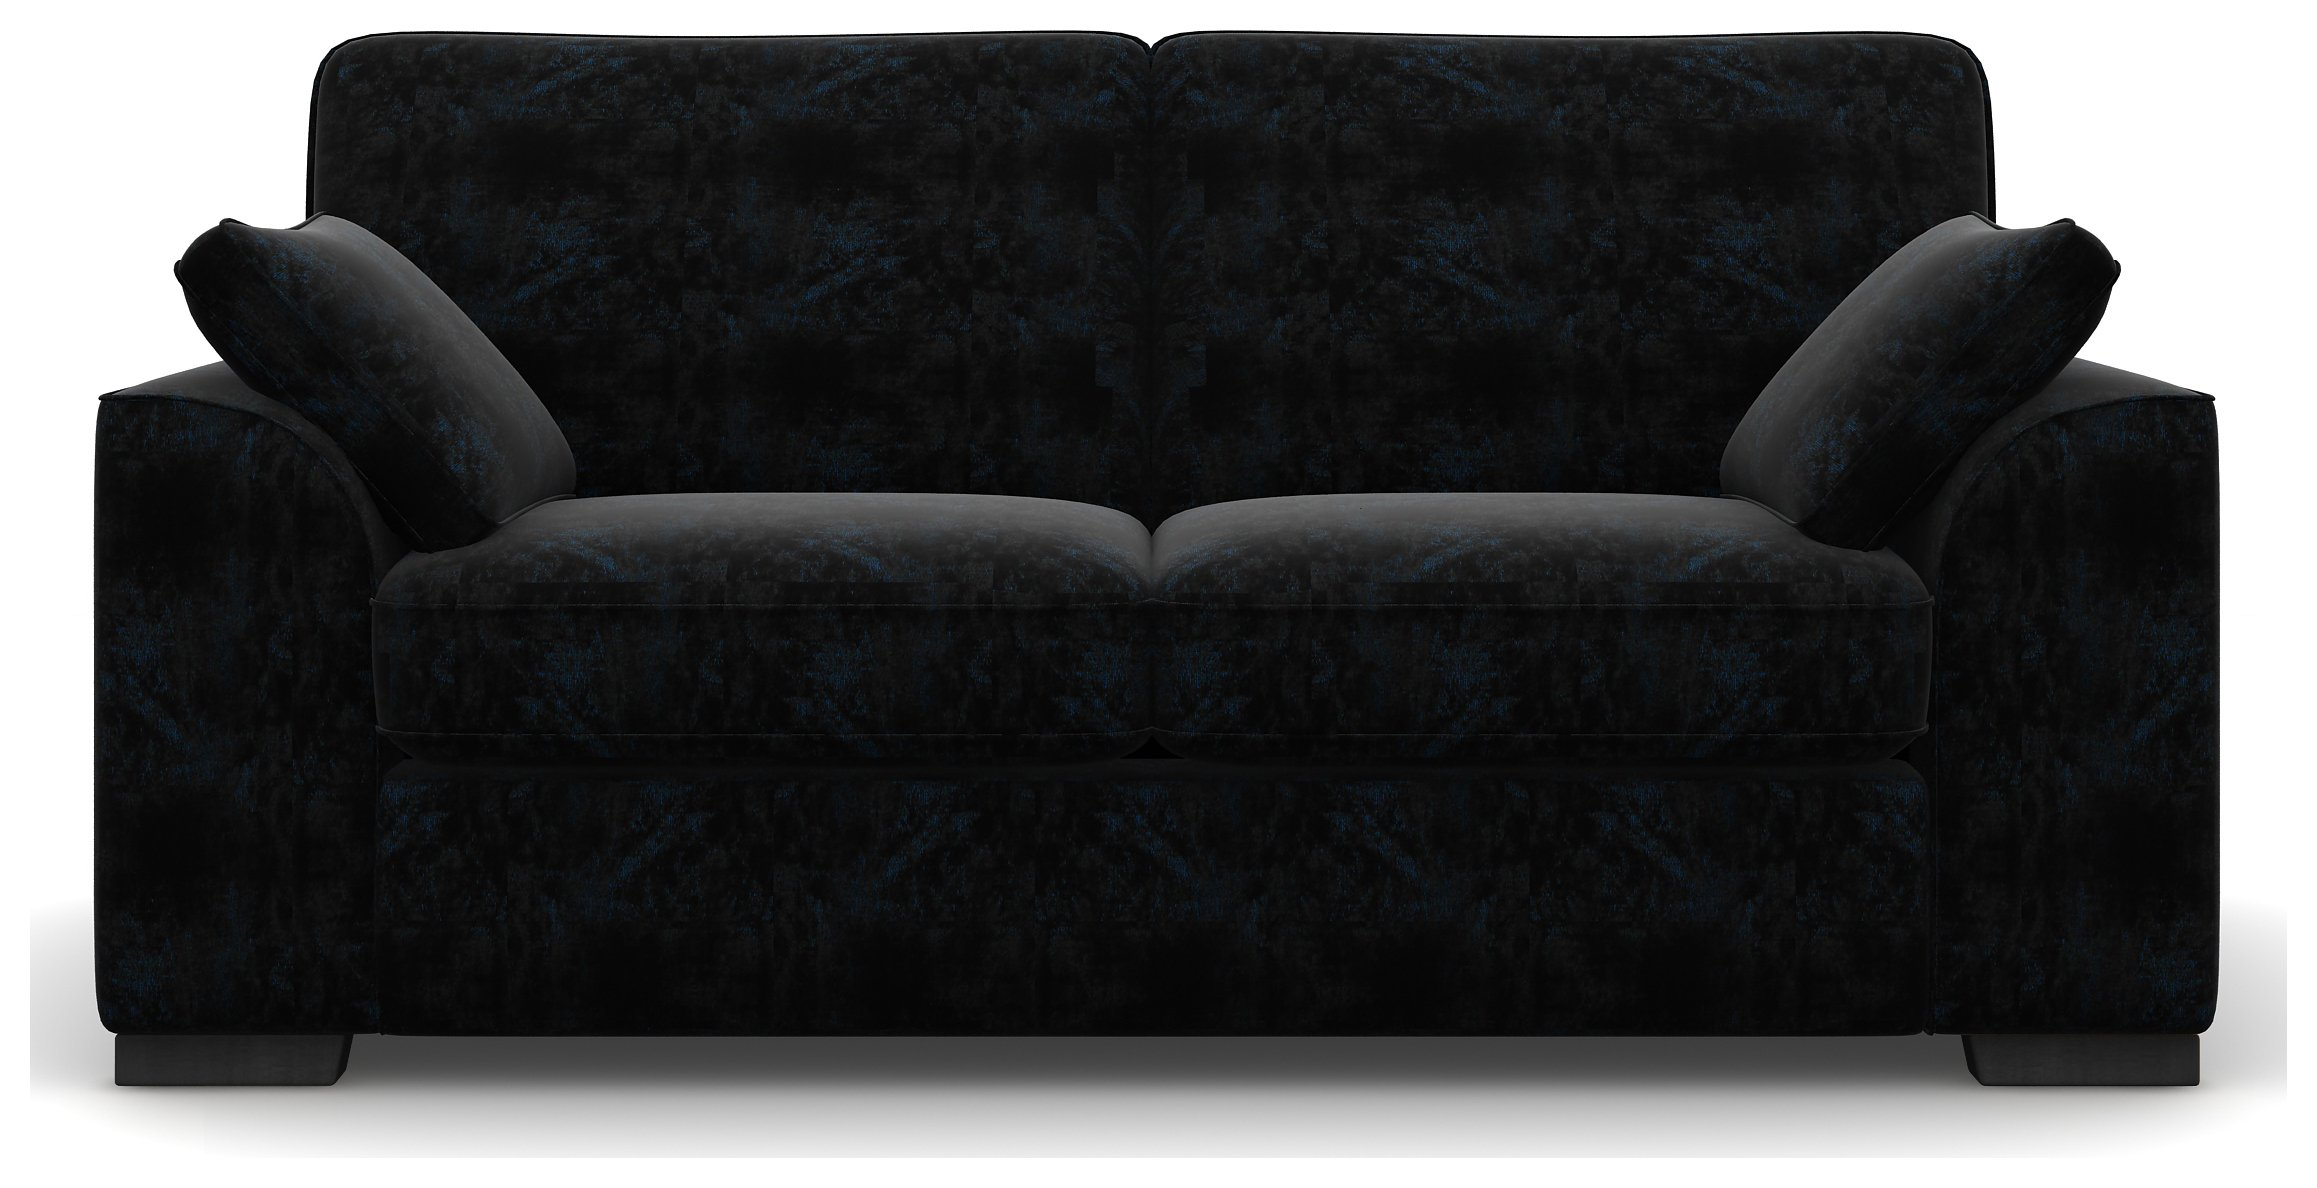 Heart of House Lincoln 2 Seater Shimmer Fabric Sofa - Black.